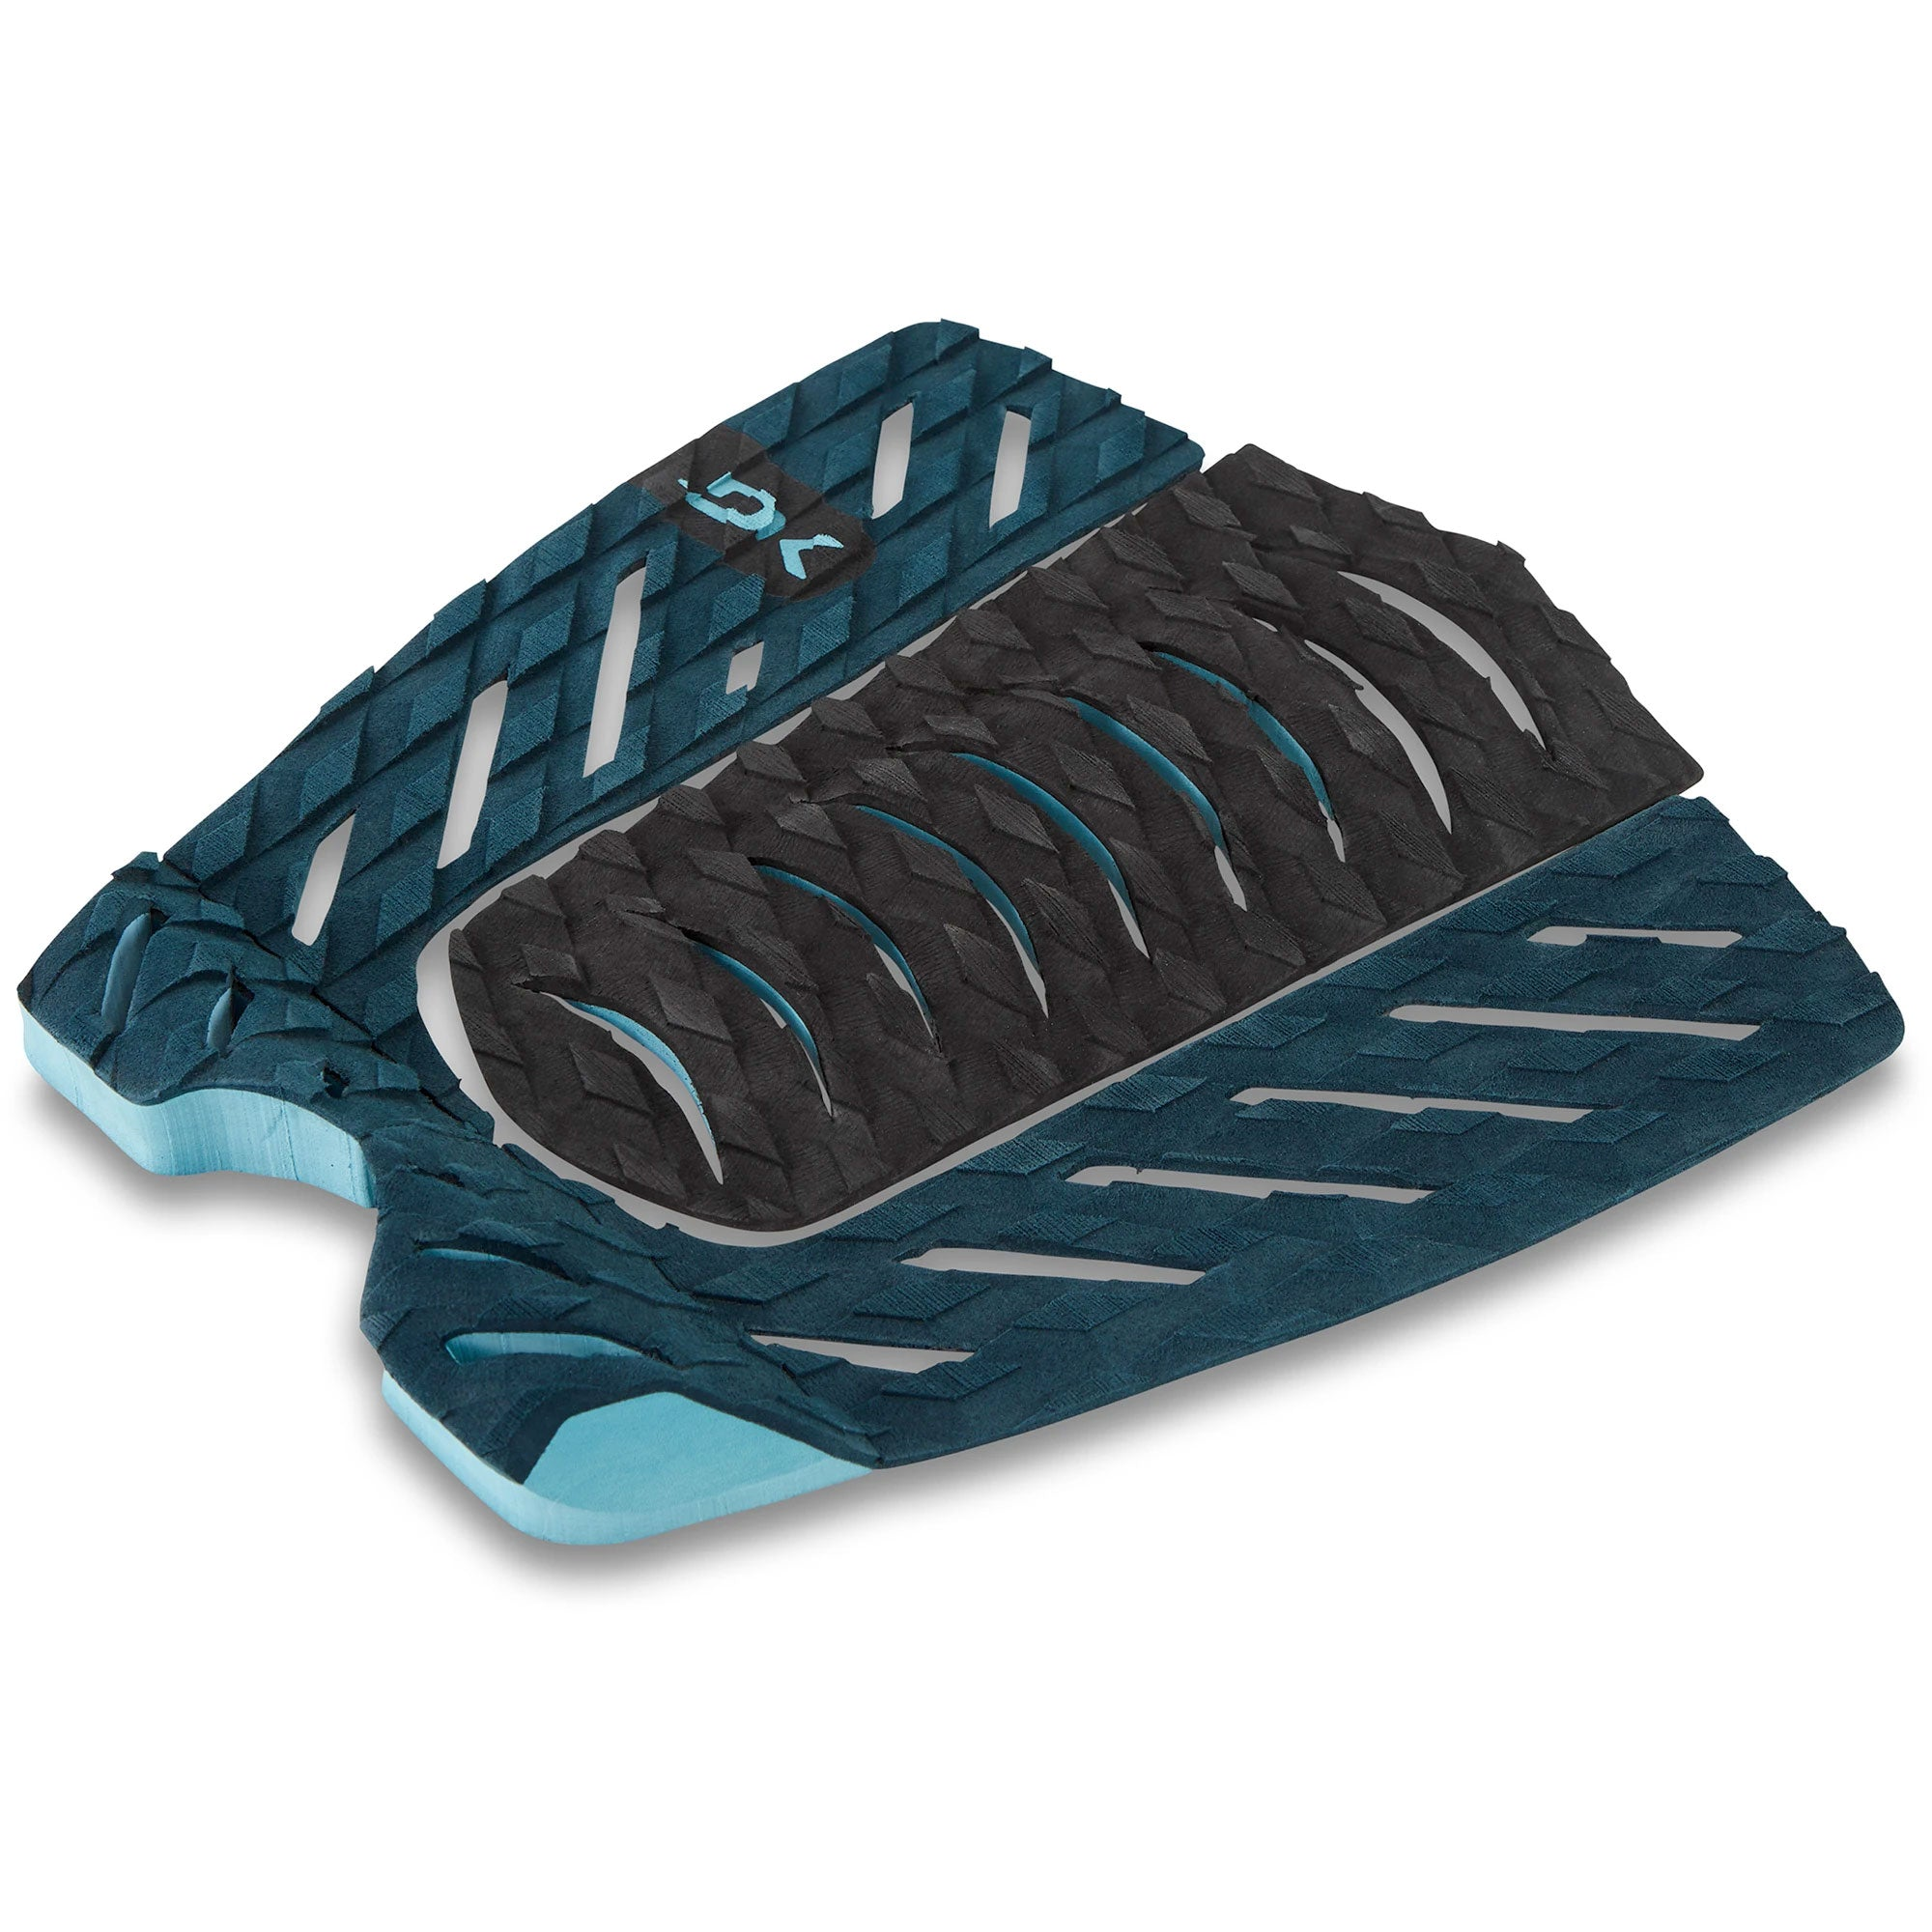 Dakine Superlite Friendly Foam Arch Traction Pad - Digital Teal